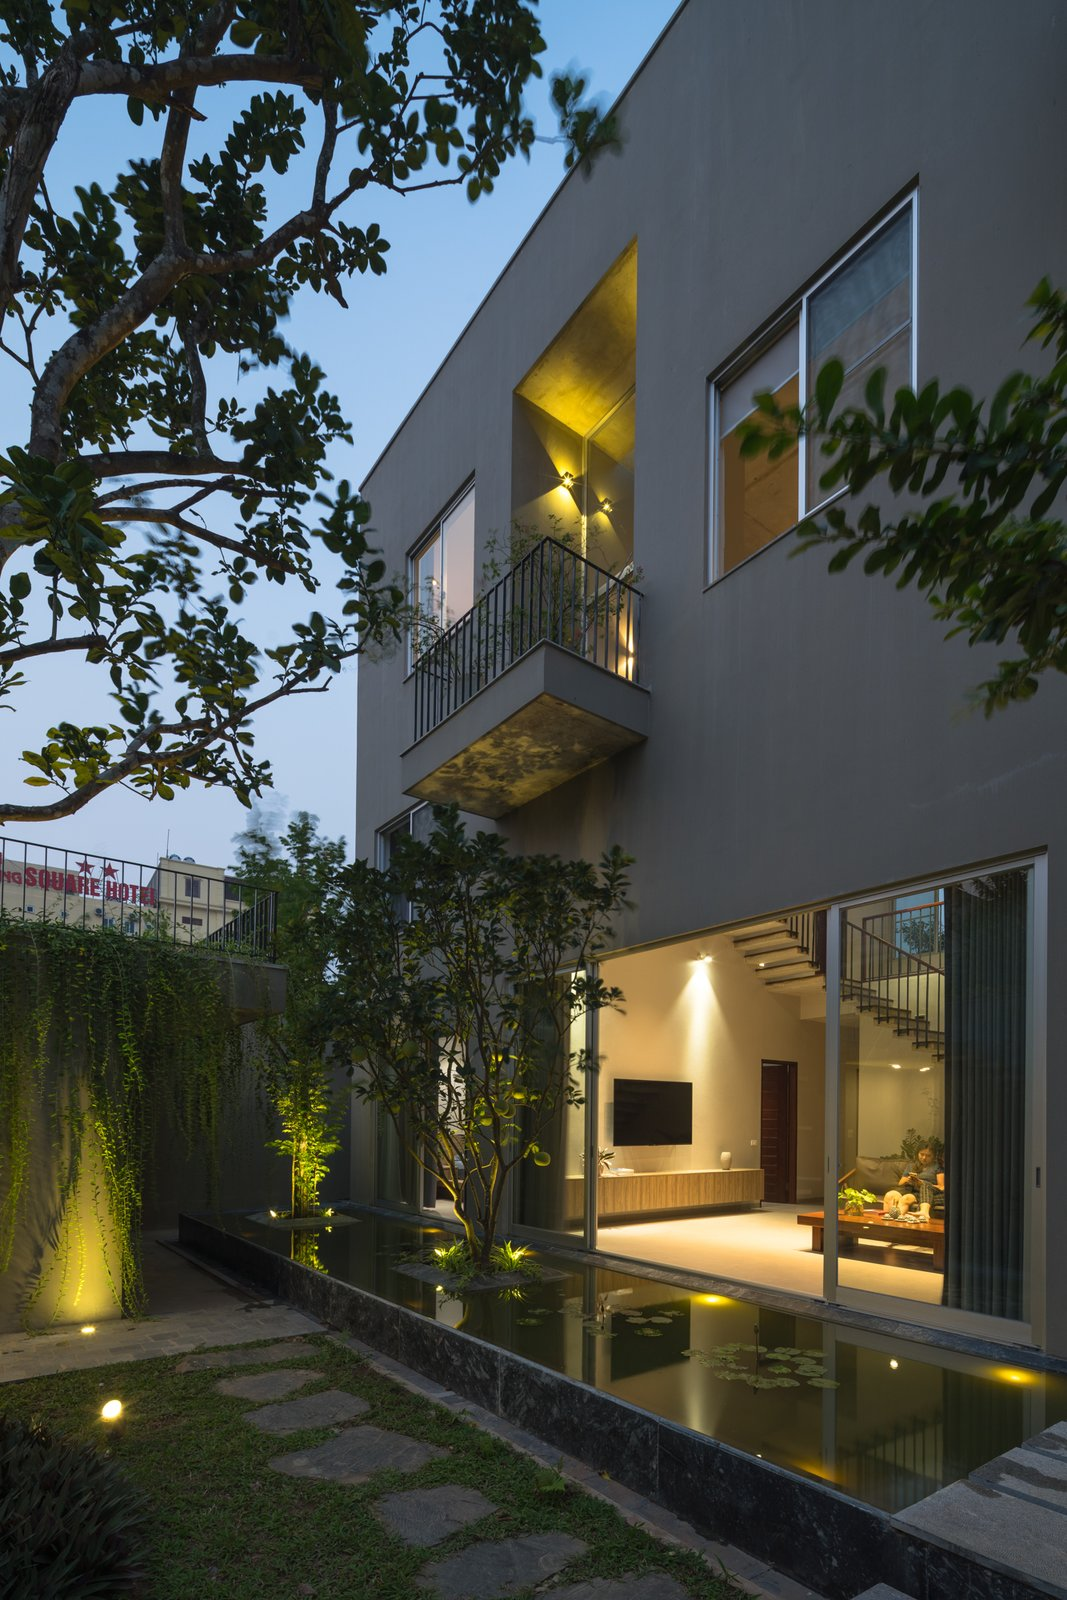 Outdoor, Small Pools, Tubs, Shower, Front Yard, Trees, Shrubs, Walkways, Grass, Concrete Fences, Wall, and Landscape Lighting The garden has become an indispensable element of the house, rather than just a decorative element as it often is in the surrounding houses.  Ninh Binh House